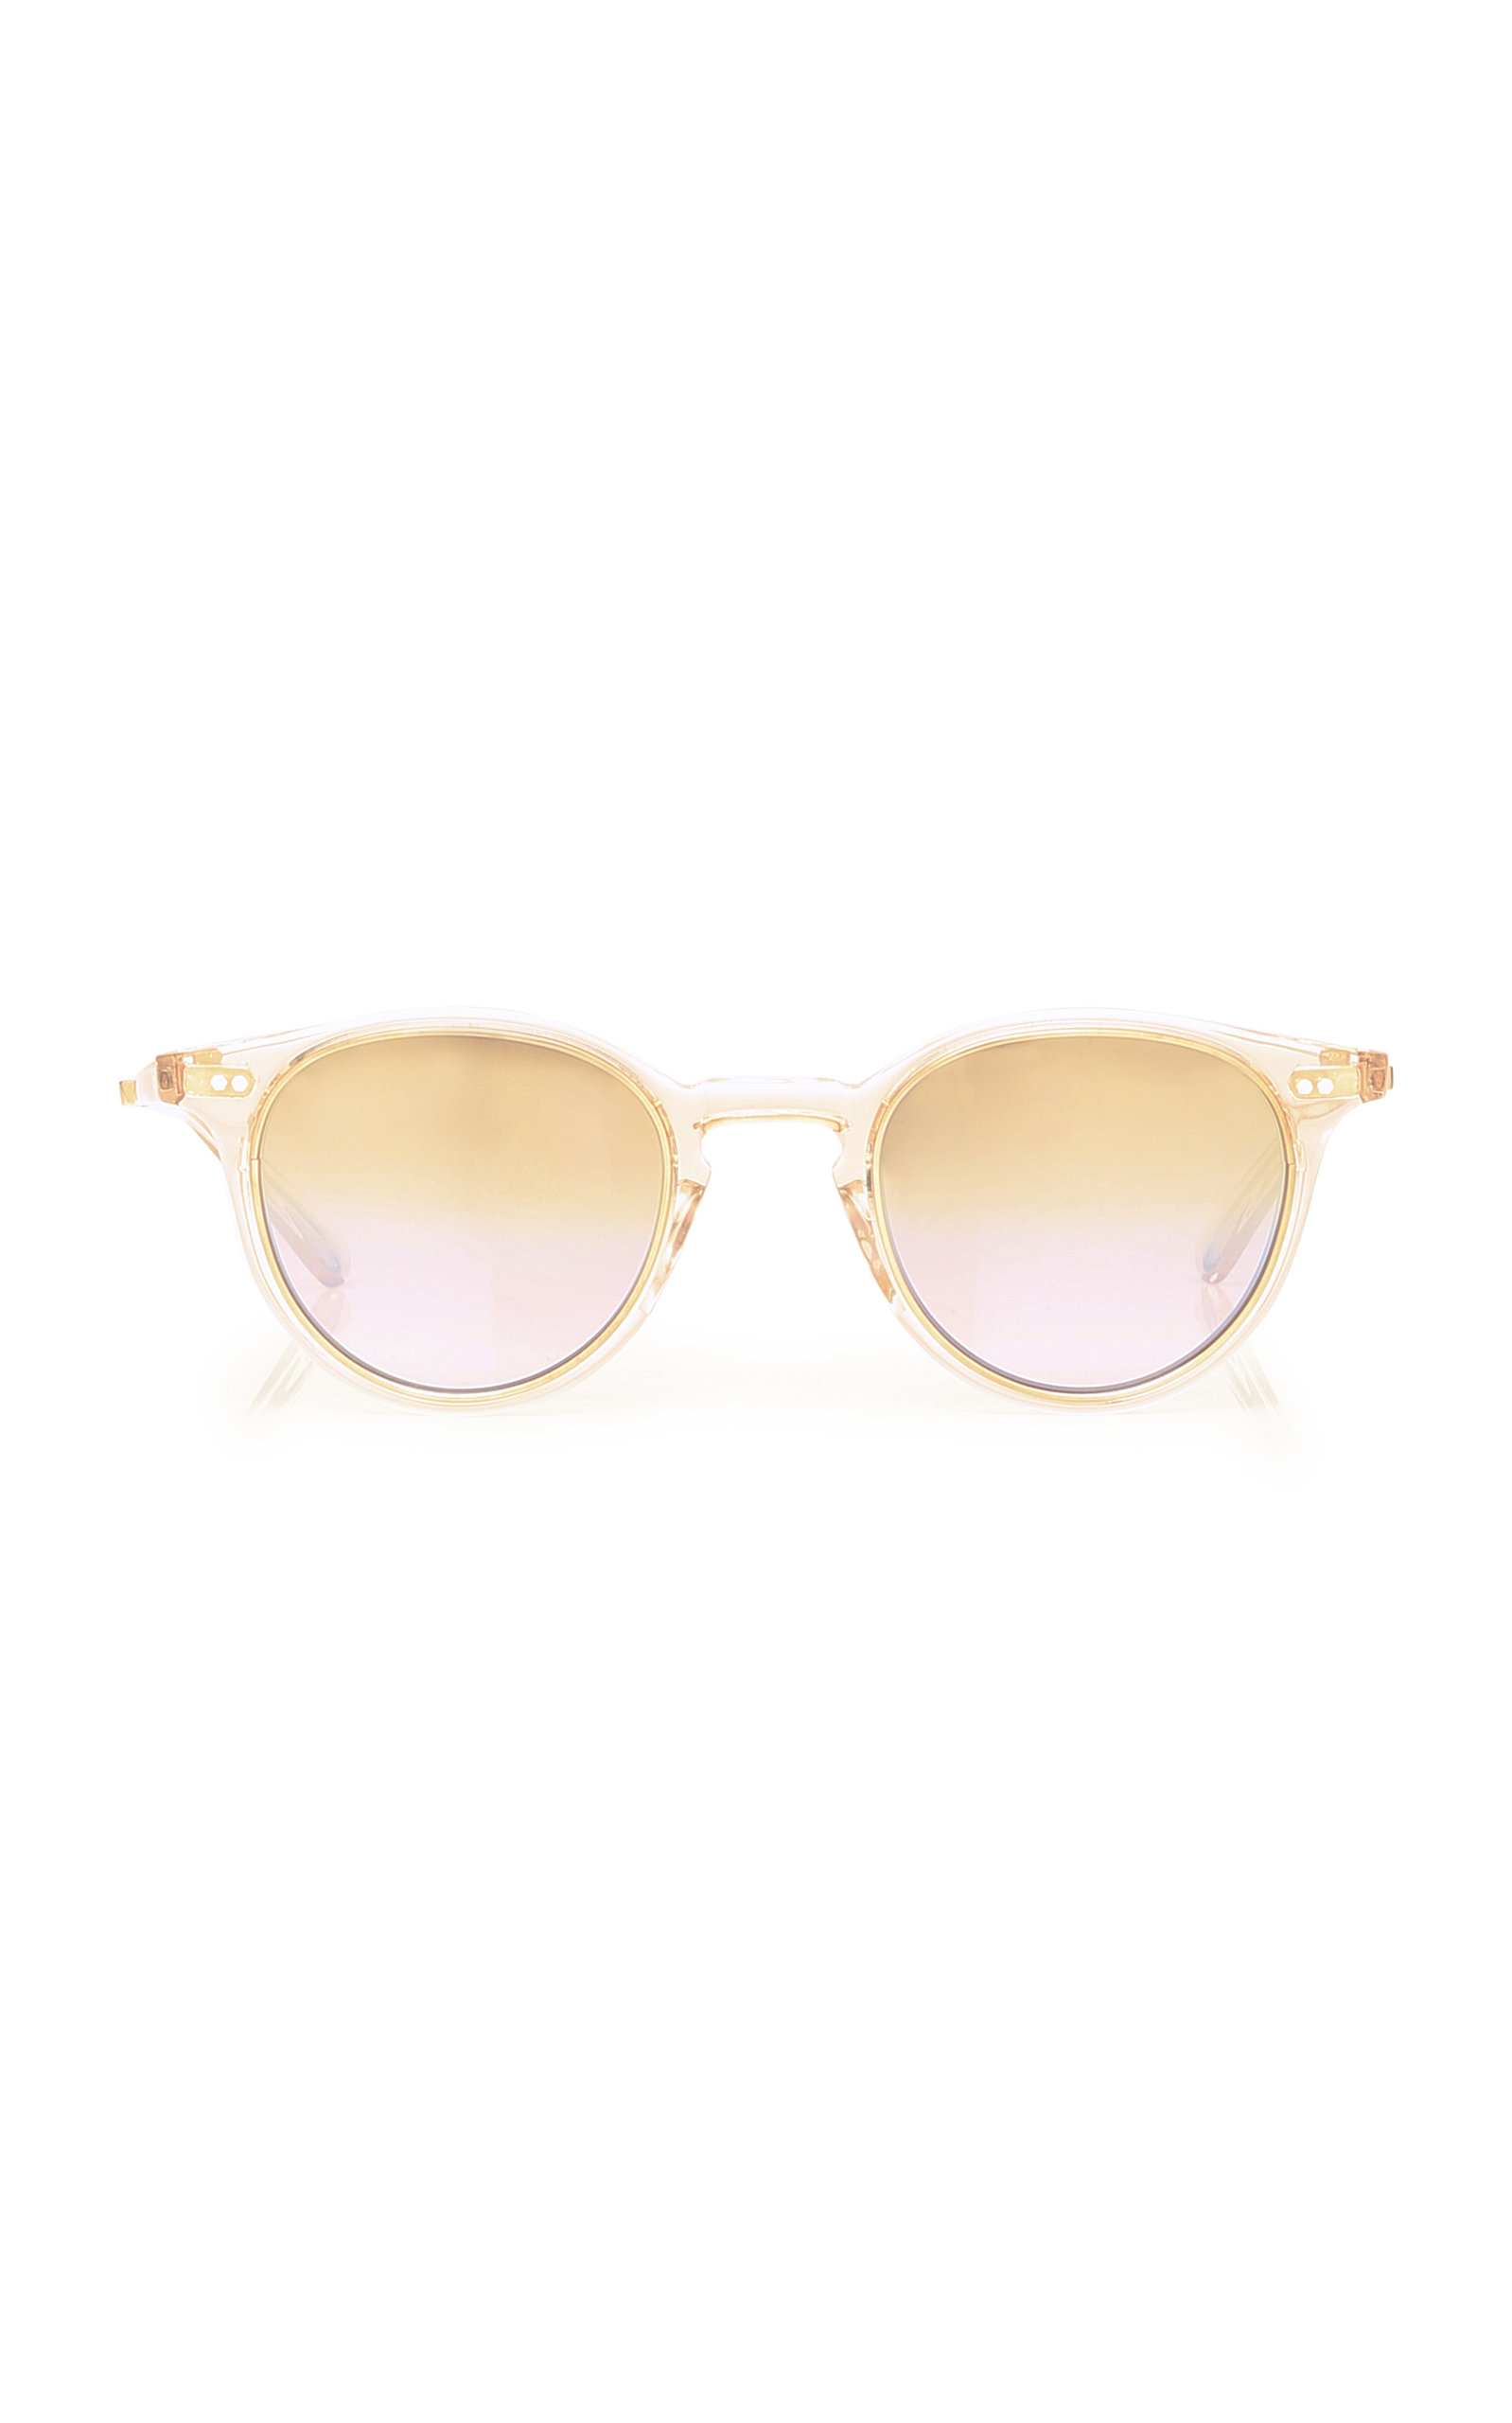 MR. LEIGHT Marmont Round Rose Gold And Acetate Sunglasses in Pink